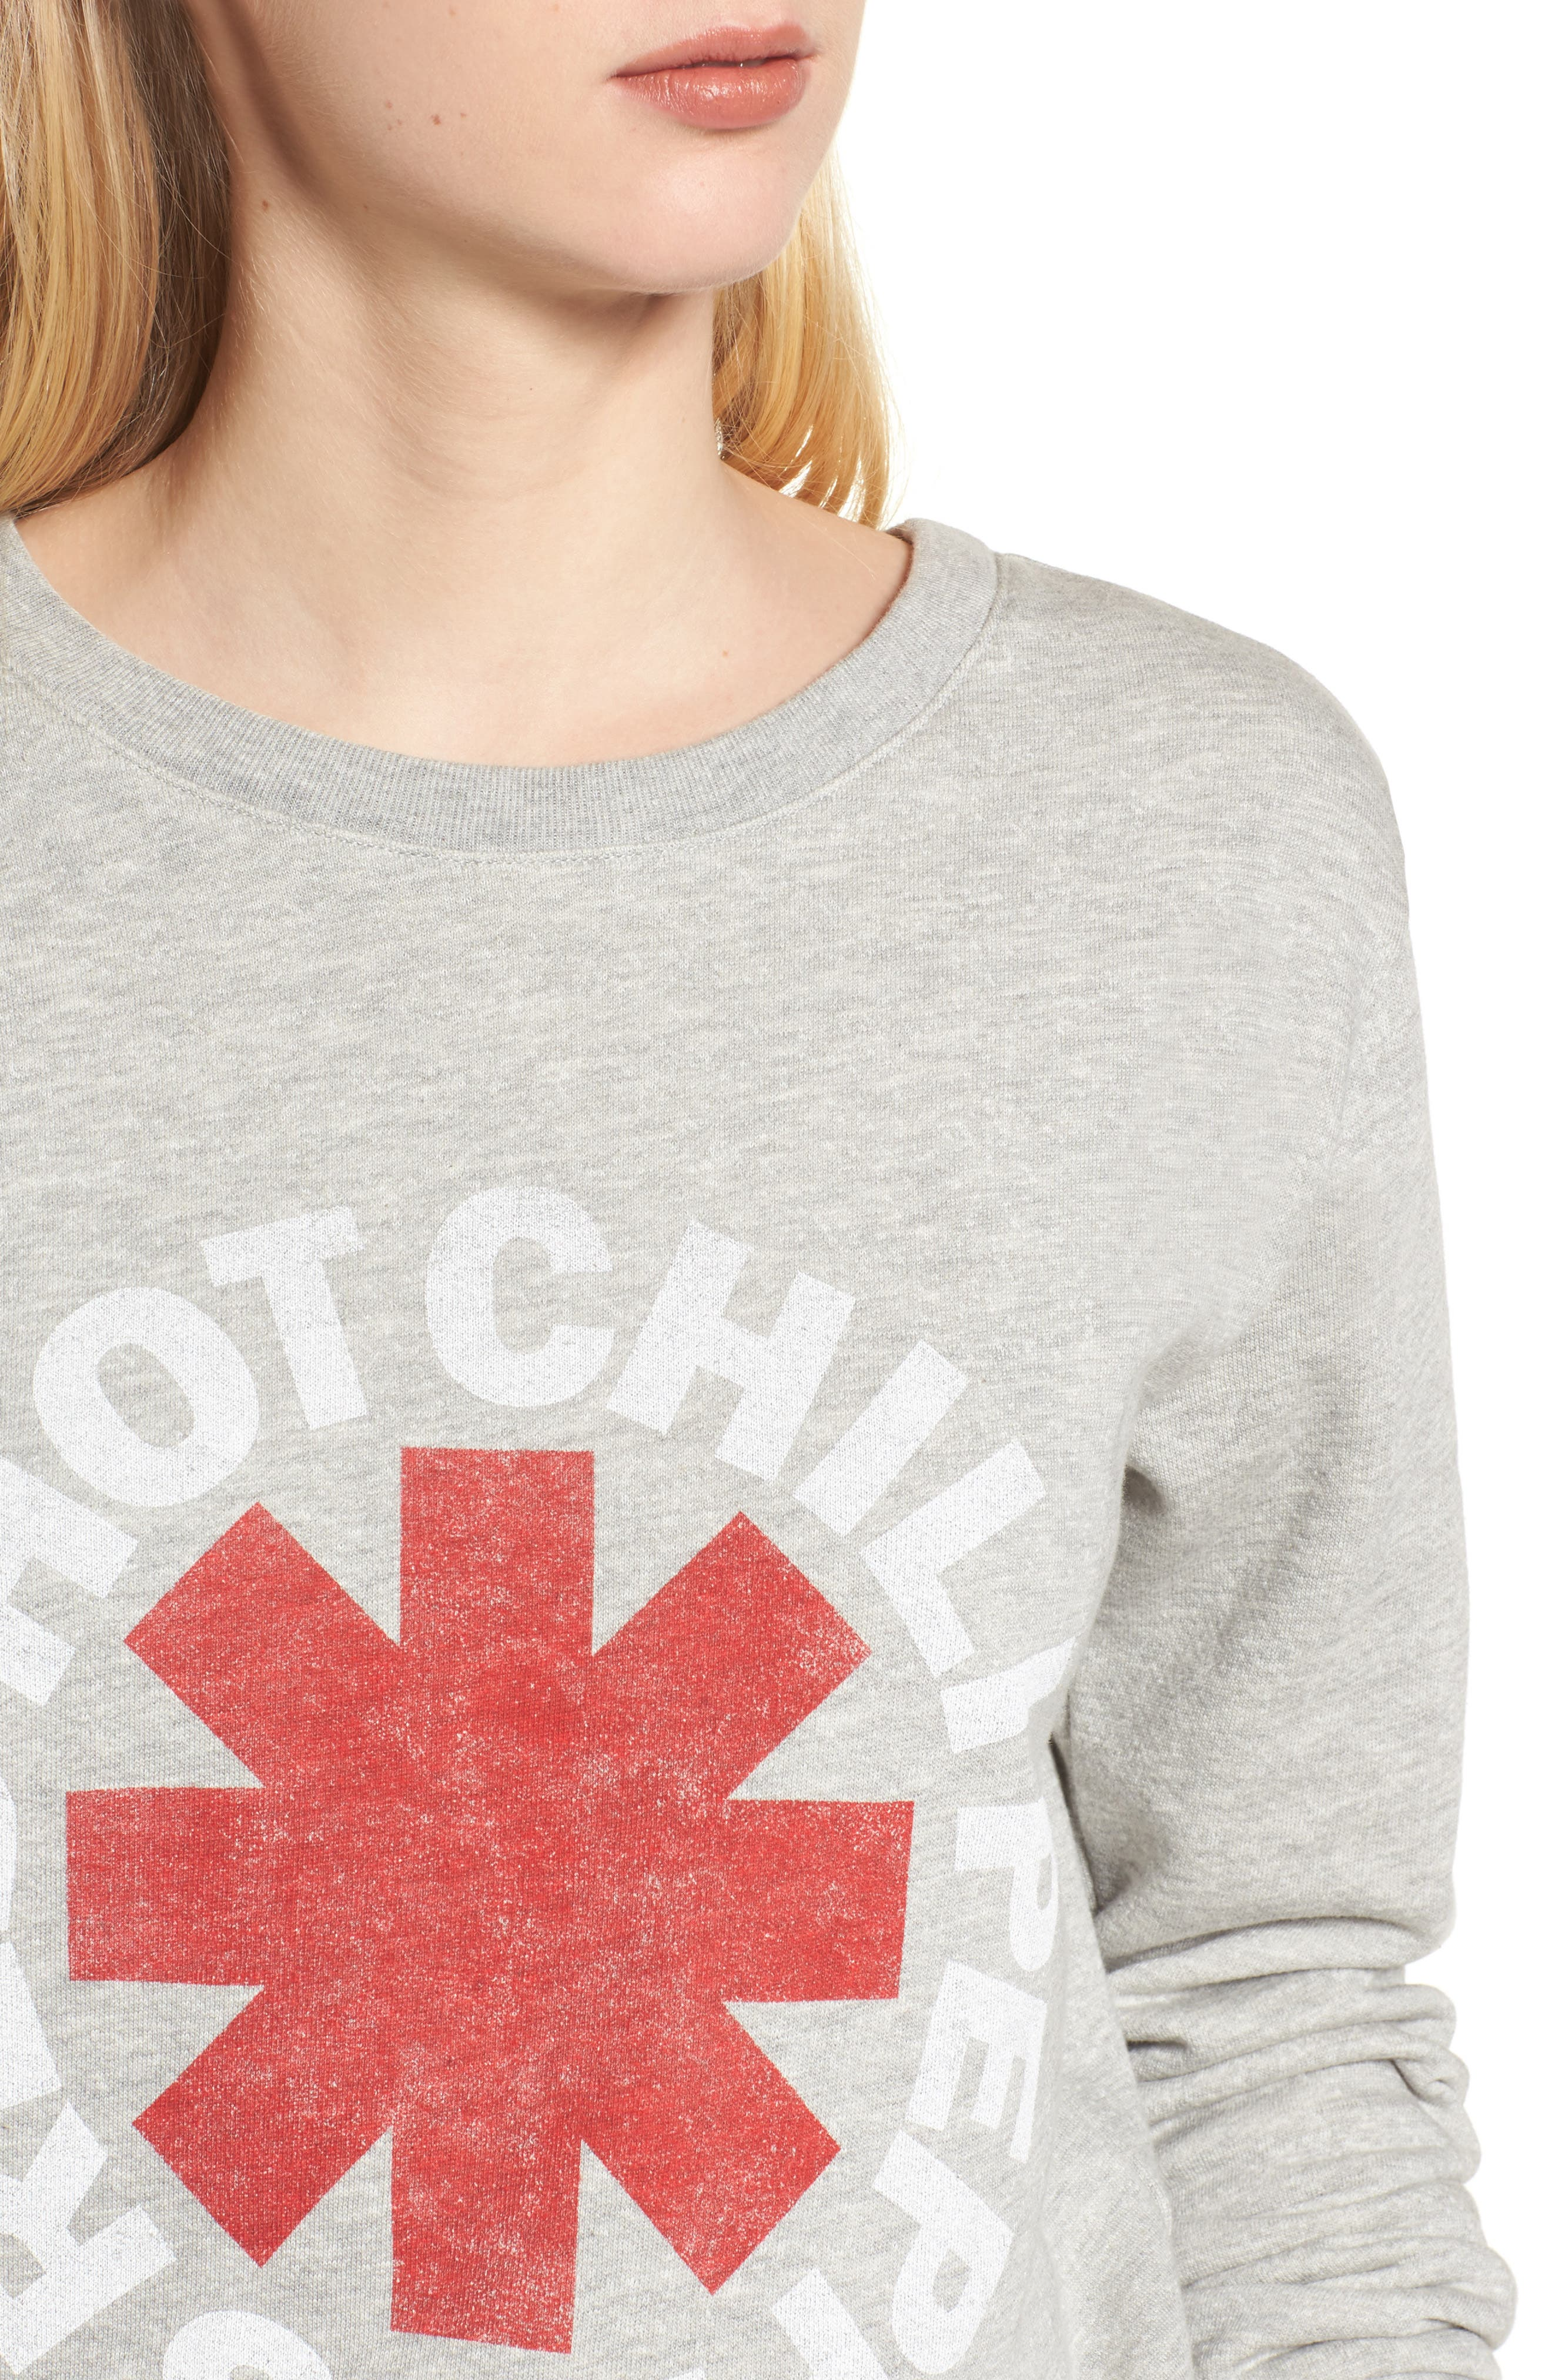 Red Hot Chili Peppers Sweatshirt,                             Alternate thumbnail 4, color,